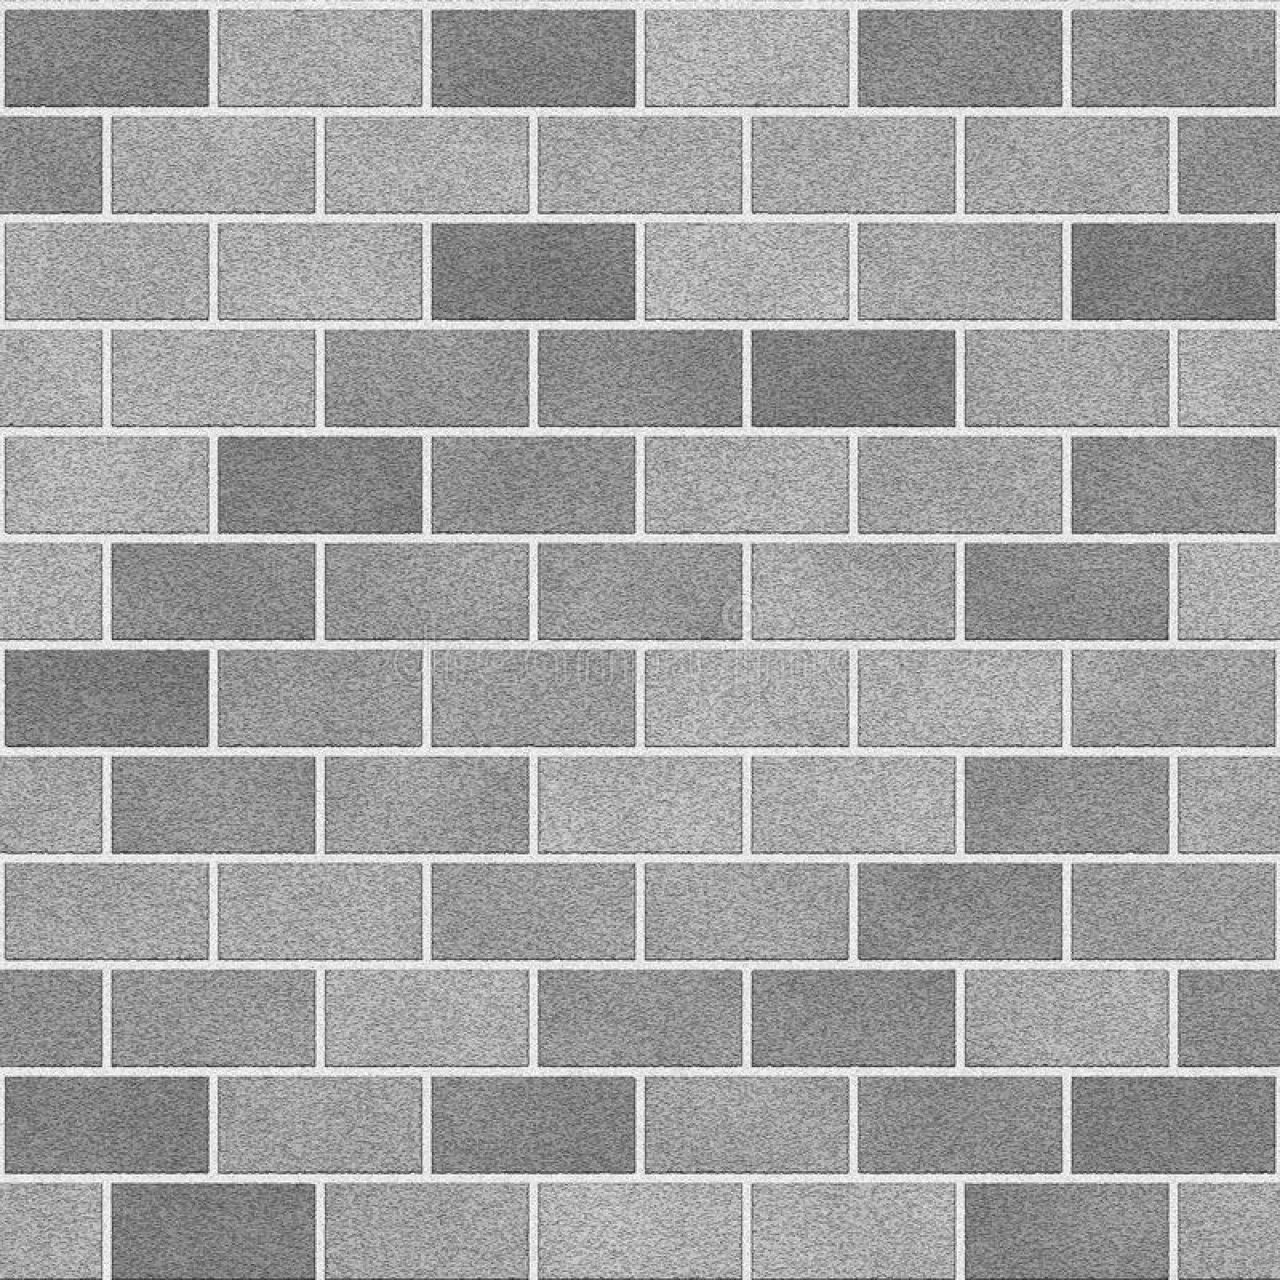 cropped-grey-construction-blocks-texture-11462003